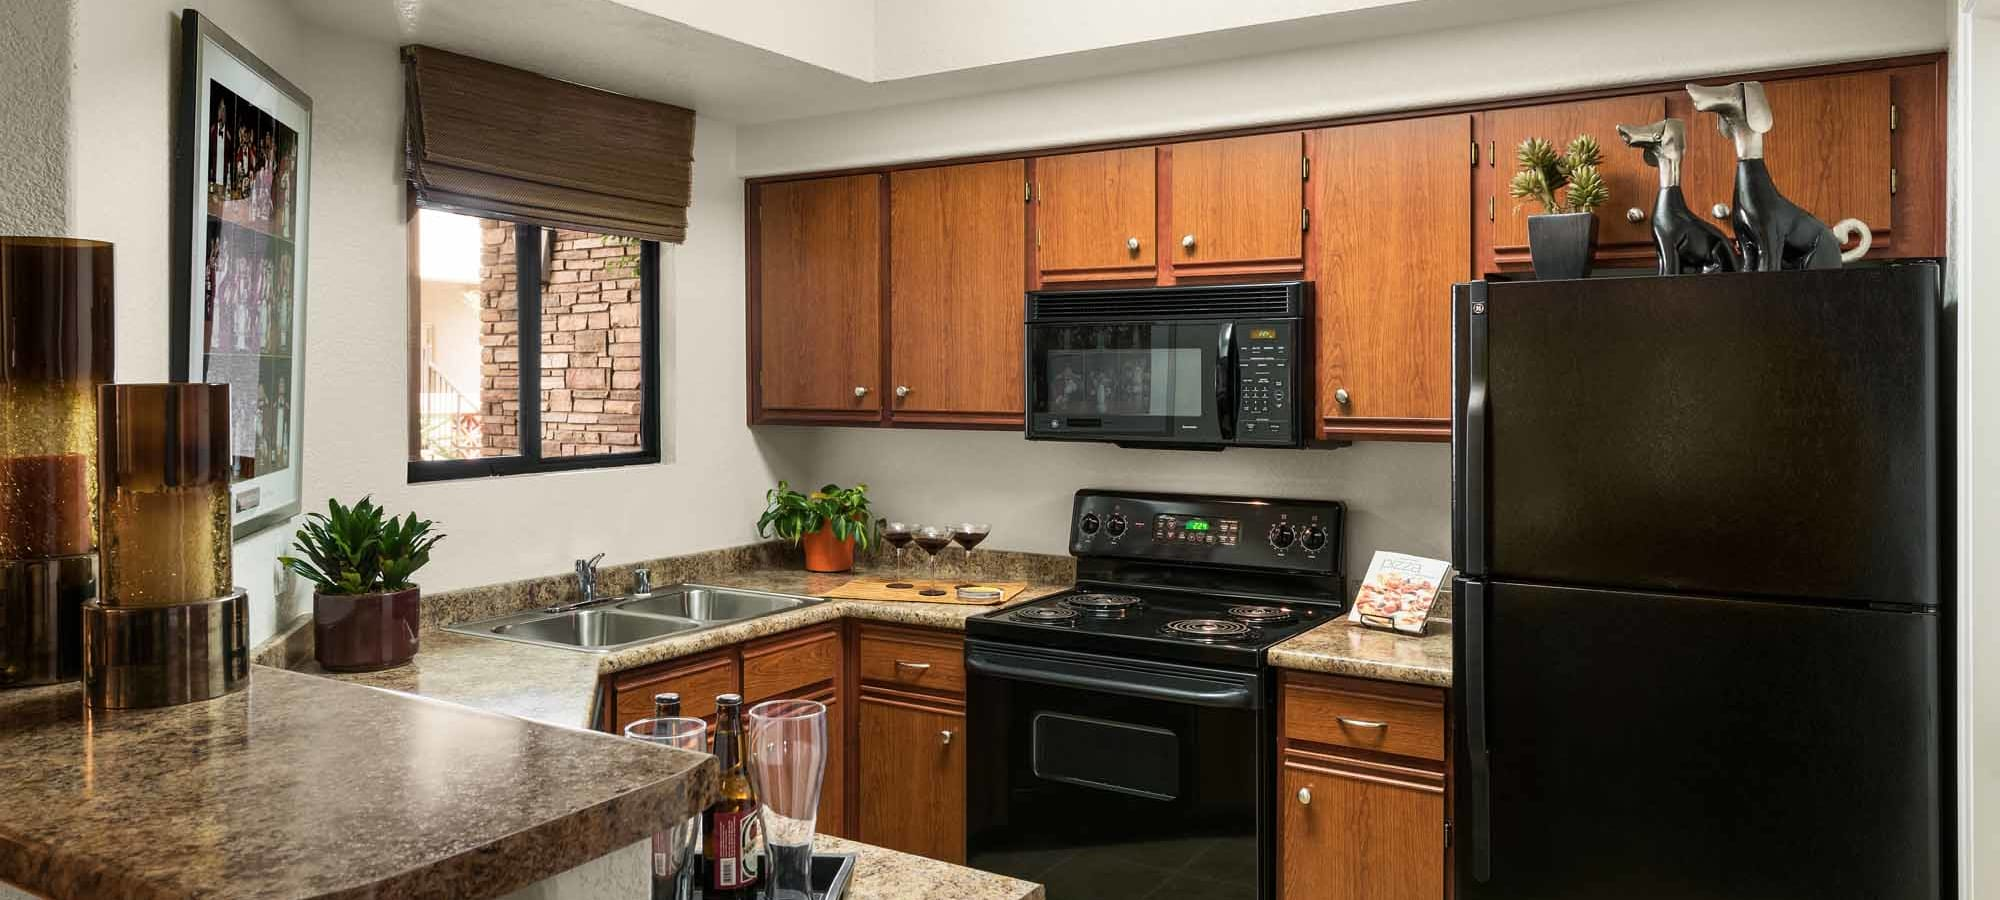 Open kitchen with breakfast bar at San Marbeya in Tempe, Arizona